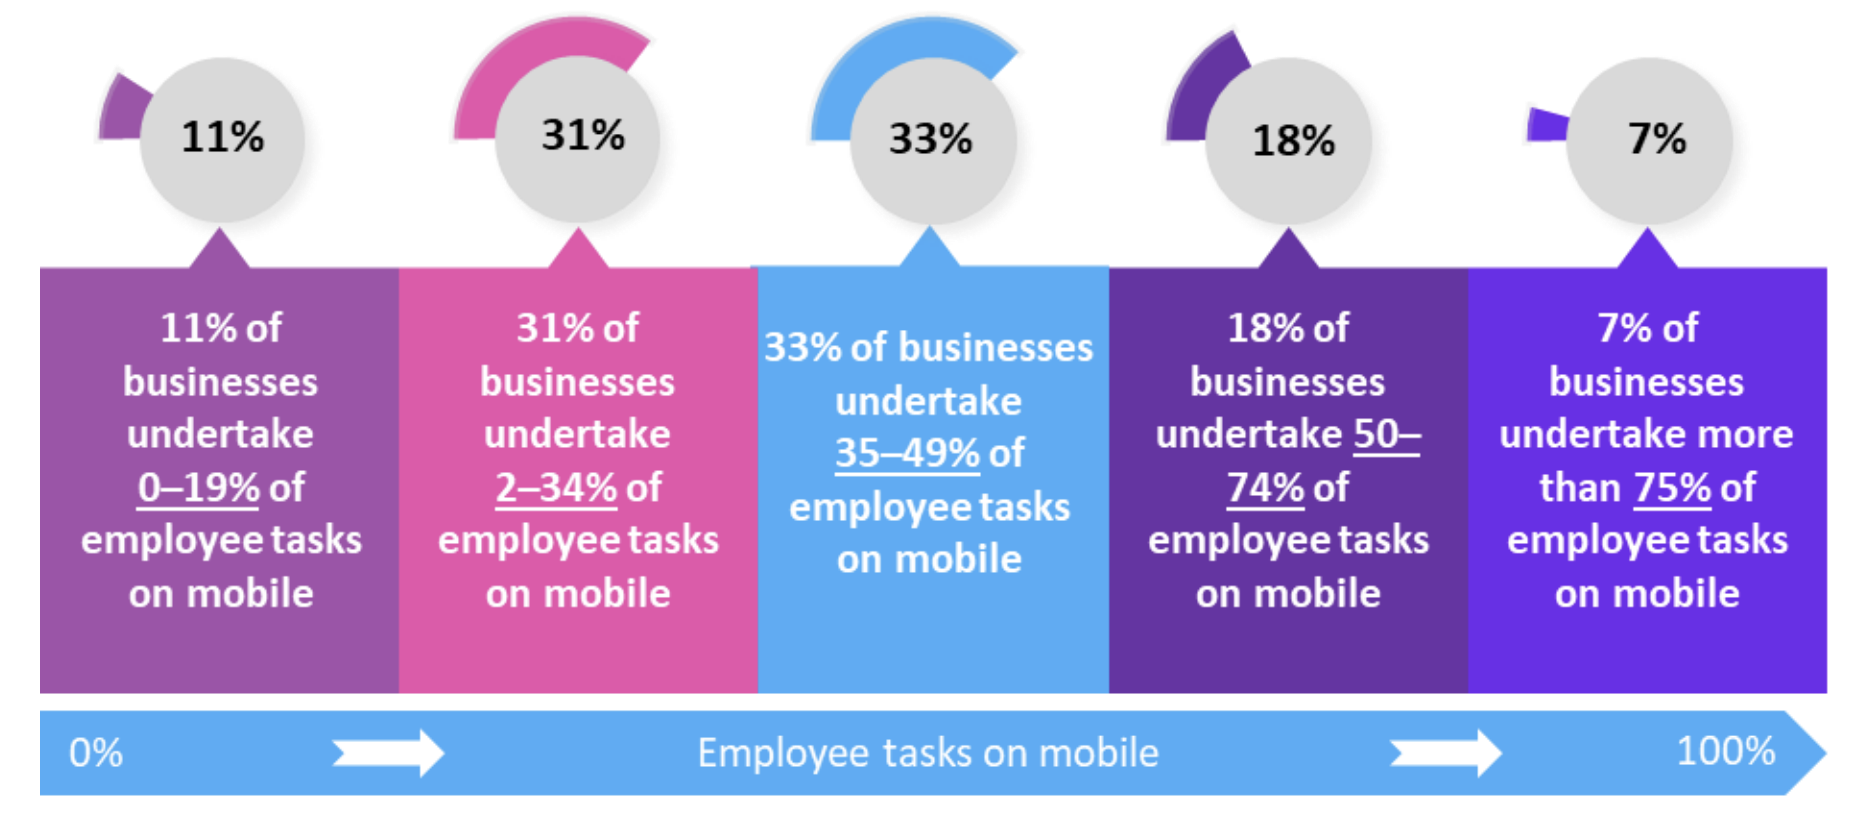 Employee tasks and workflows are moving to mobile